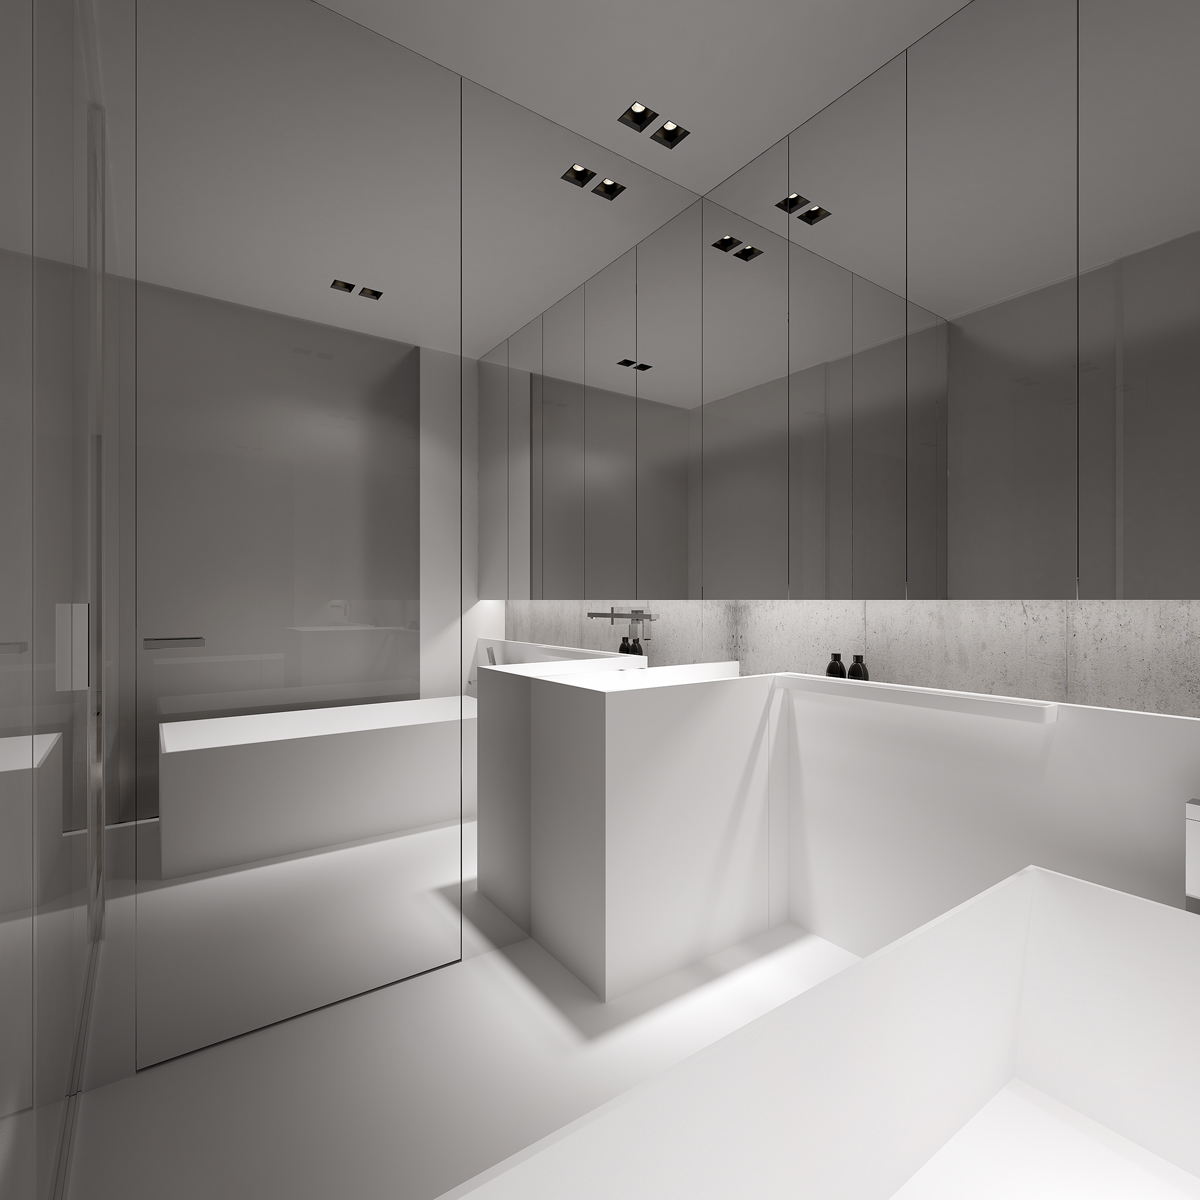 A Second Bathroom Has Light Glowing From Under The Cabinetry For Warm Easy Glow